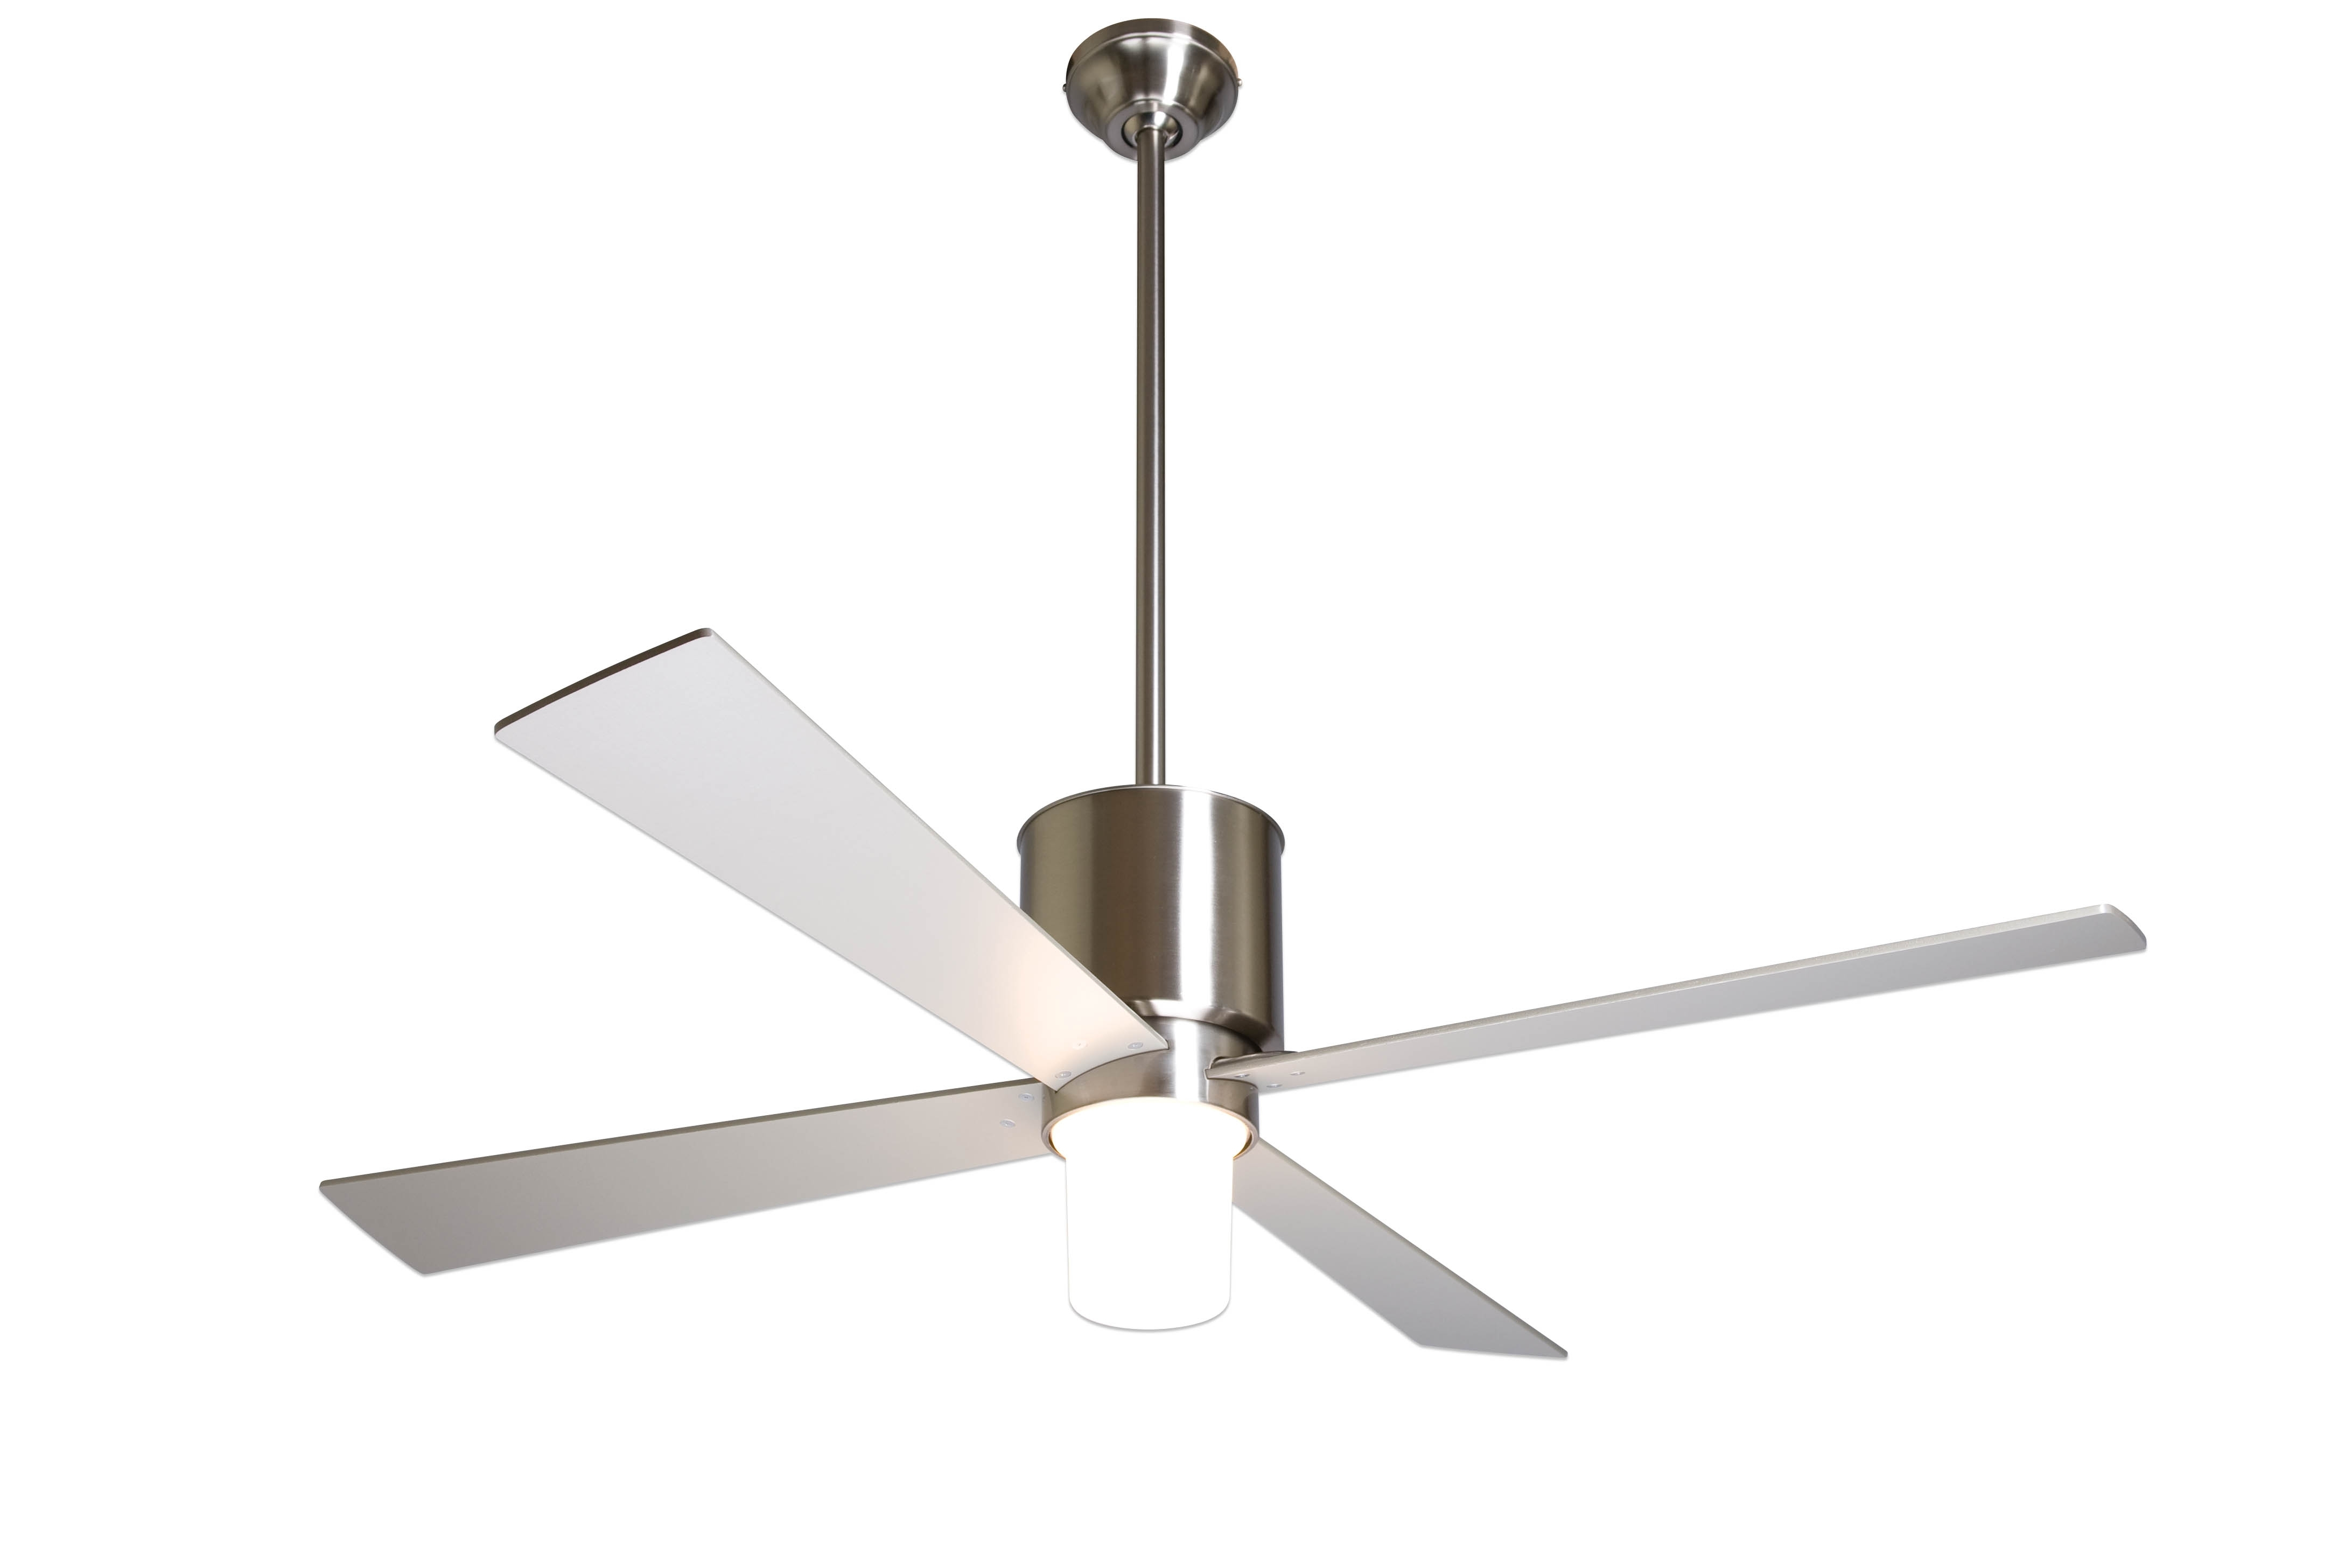 Most Recent Galvanized Outdoor Ceiling Fans With Light Inside Fresh Modern Machine Age Galvanized Ceiling Fan # (View 18 of 20)